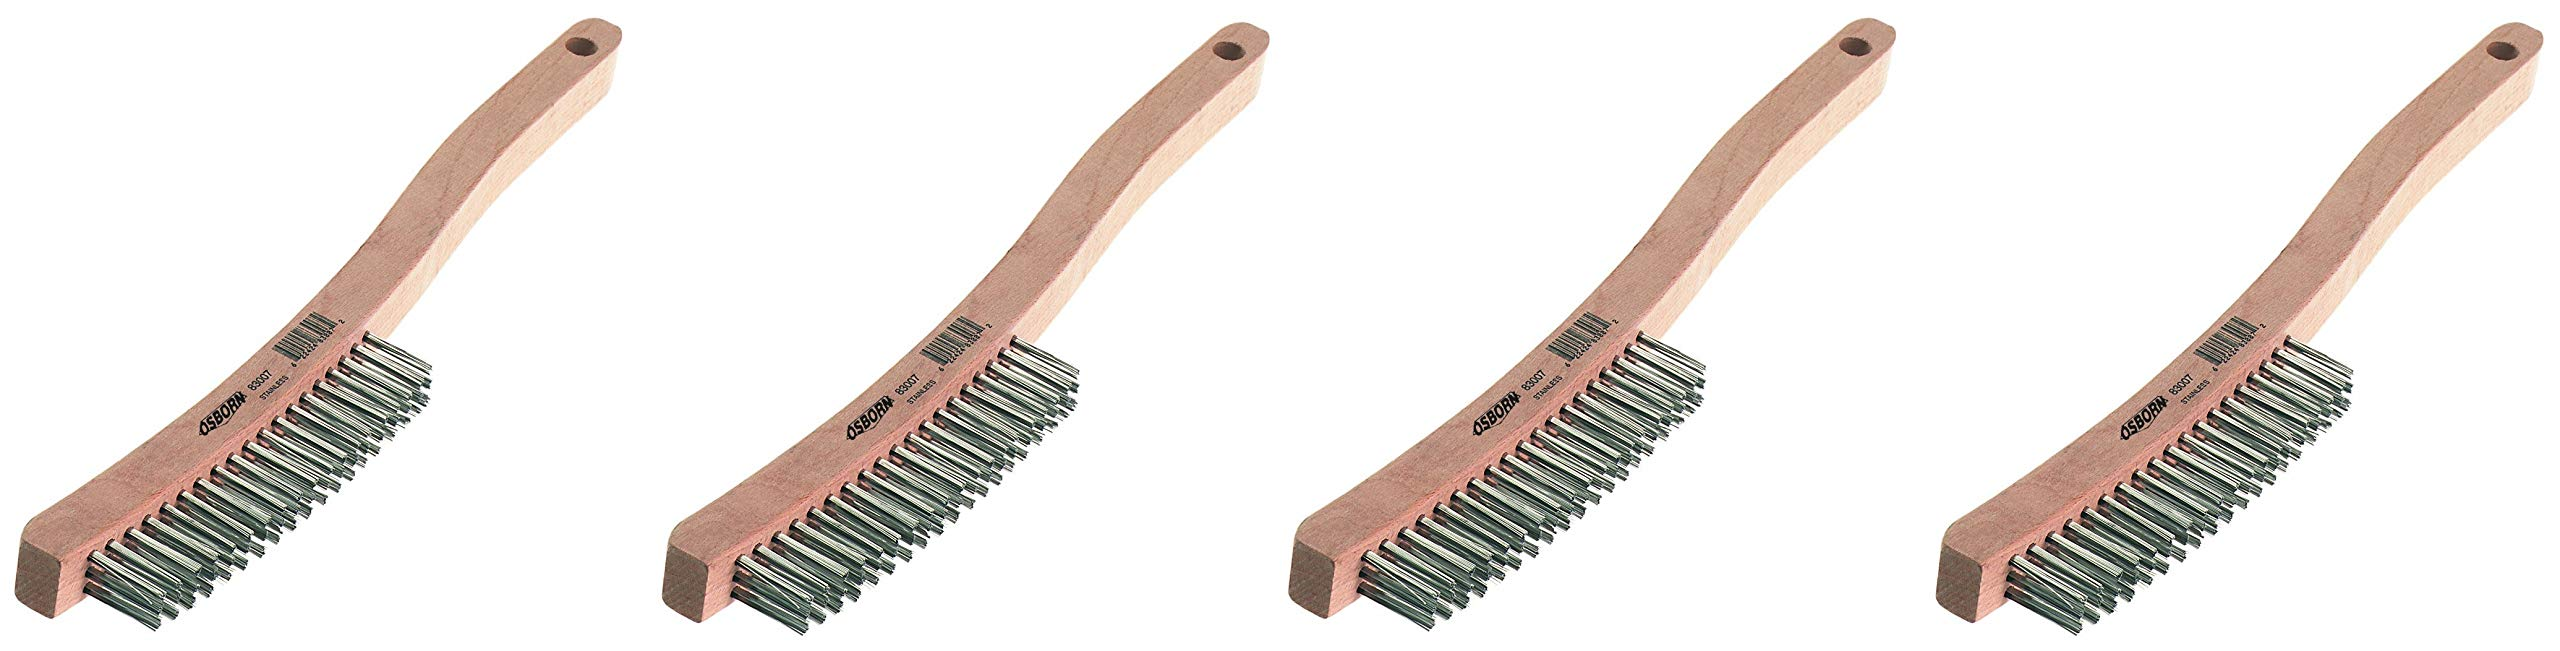 Osborn 83101 Economy Curved Handle Heavy DuScratch Brush, Stainless Steel Bristle, 6'' Length, 1-1/8'' Width Brush, 13-11/16'' Overall Length (Fоur Paсk)